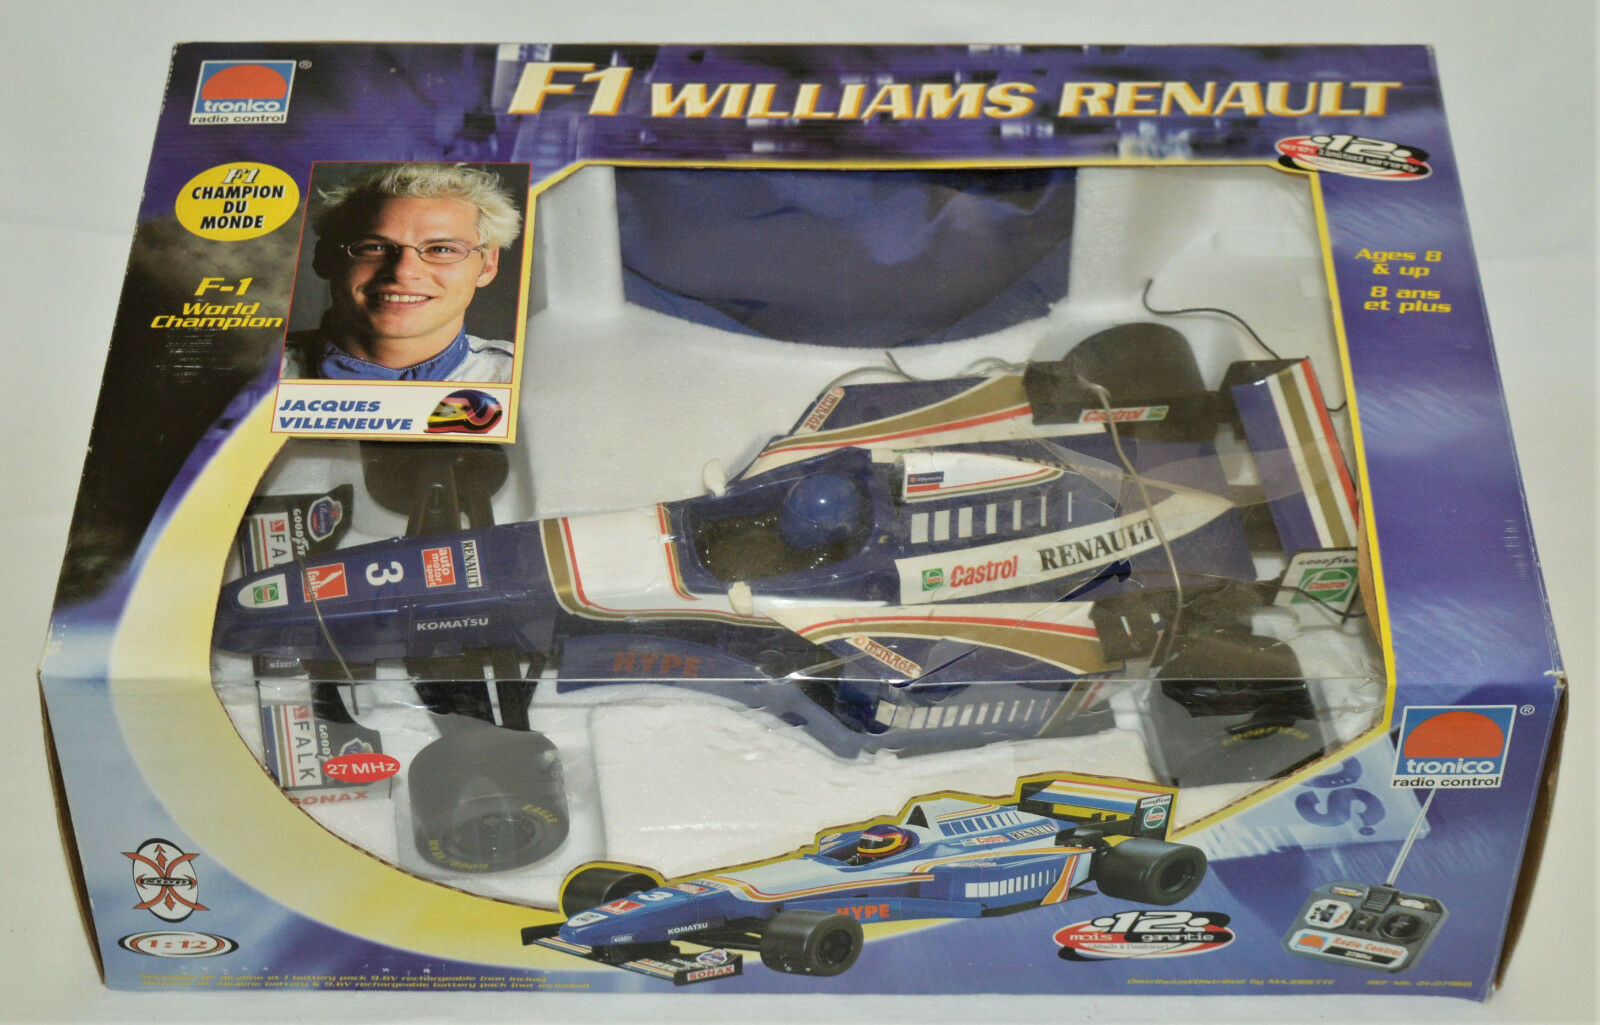 Jacques Villeneuve Villeneuve Villeneuve F1 Williams Renault tronico Radio Control Vehicle New Box e9c